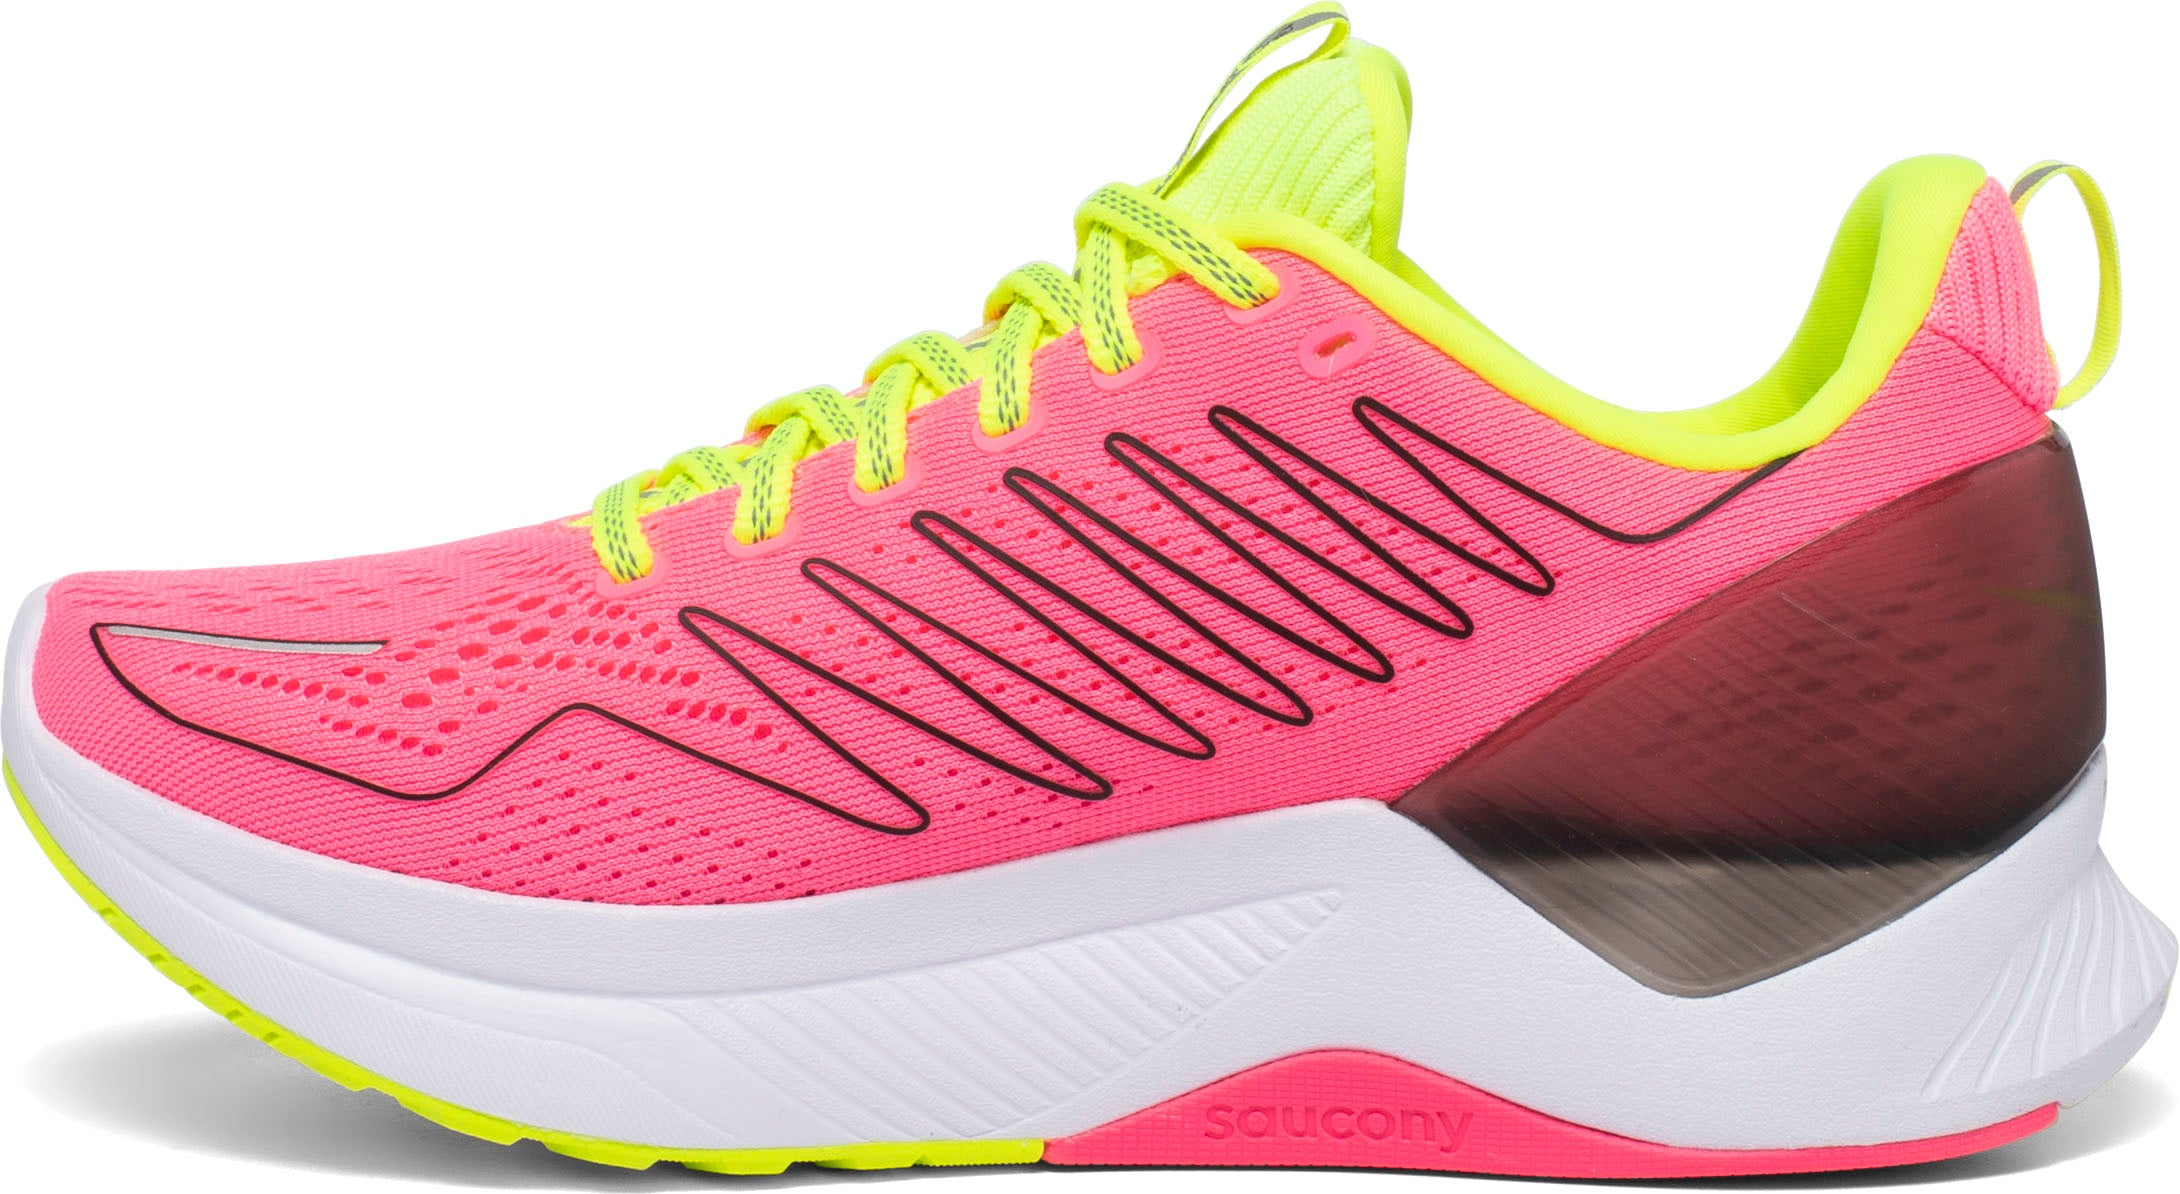 Women's Endorphin Shift (65 - Vizi Pink)